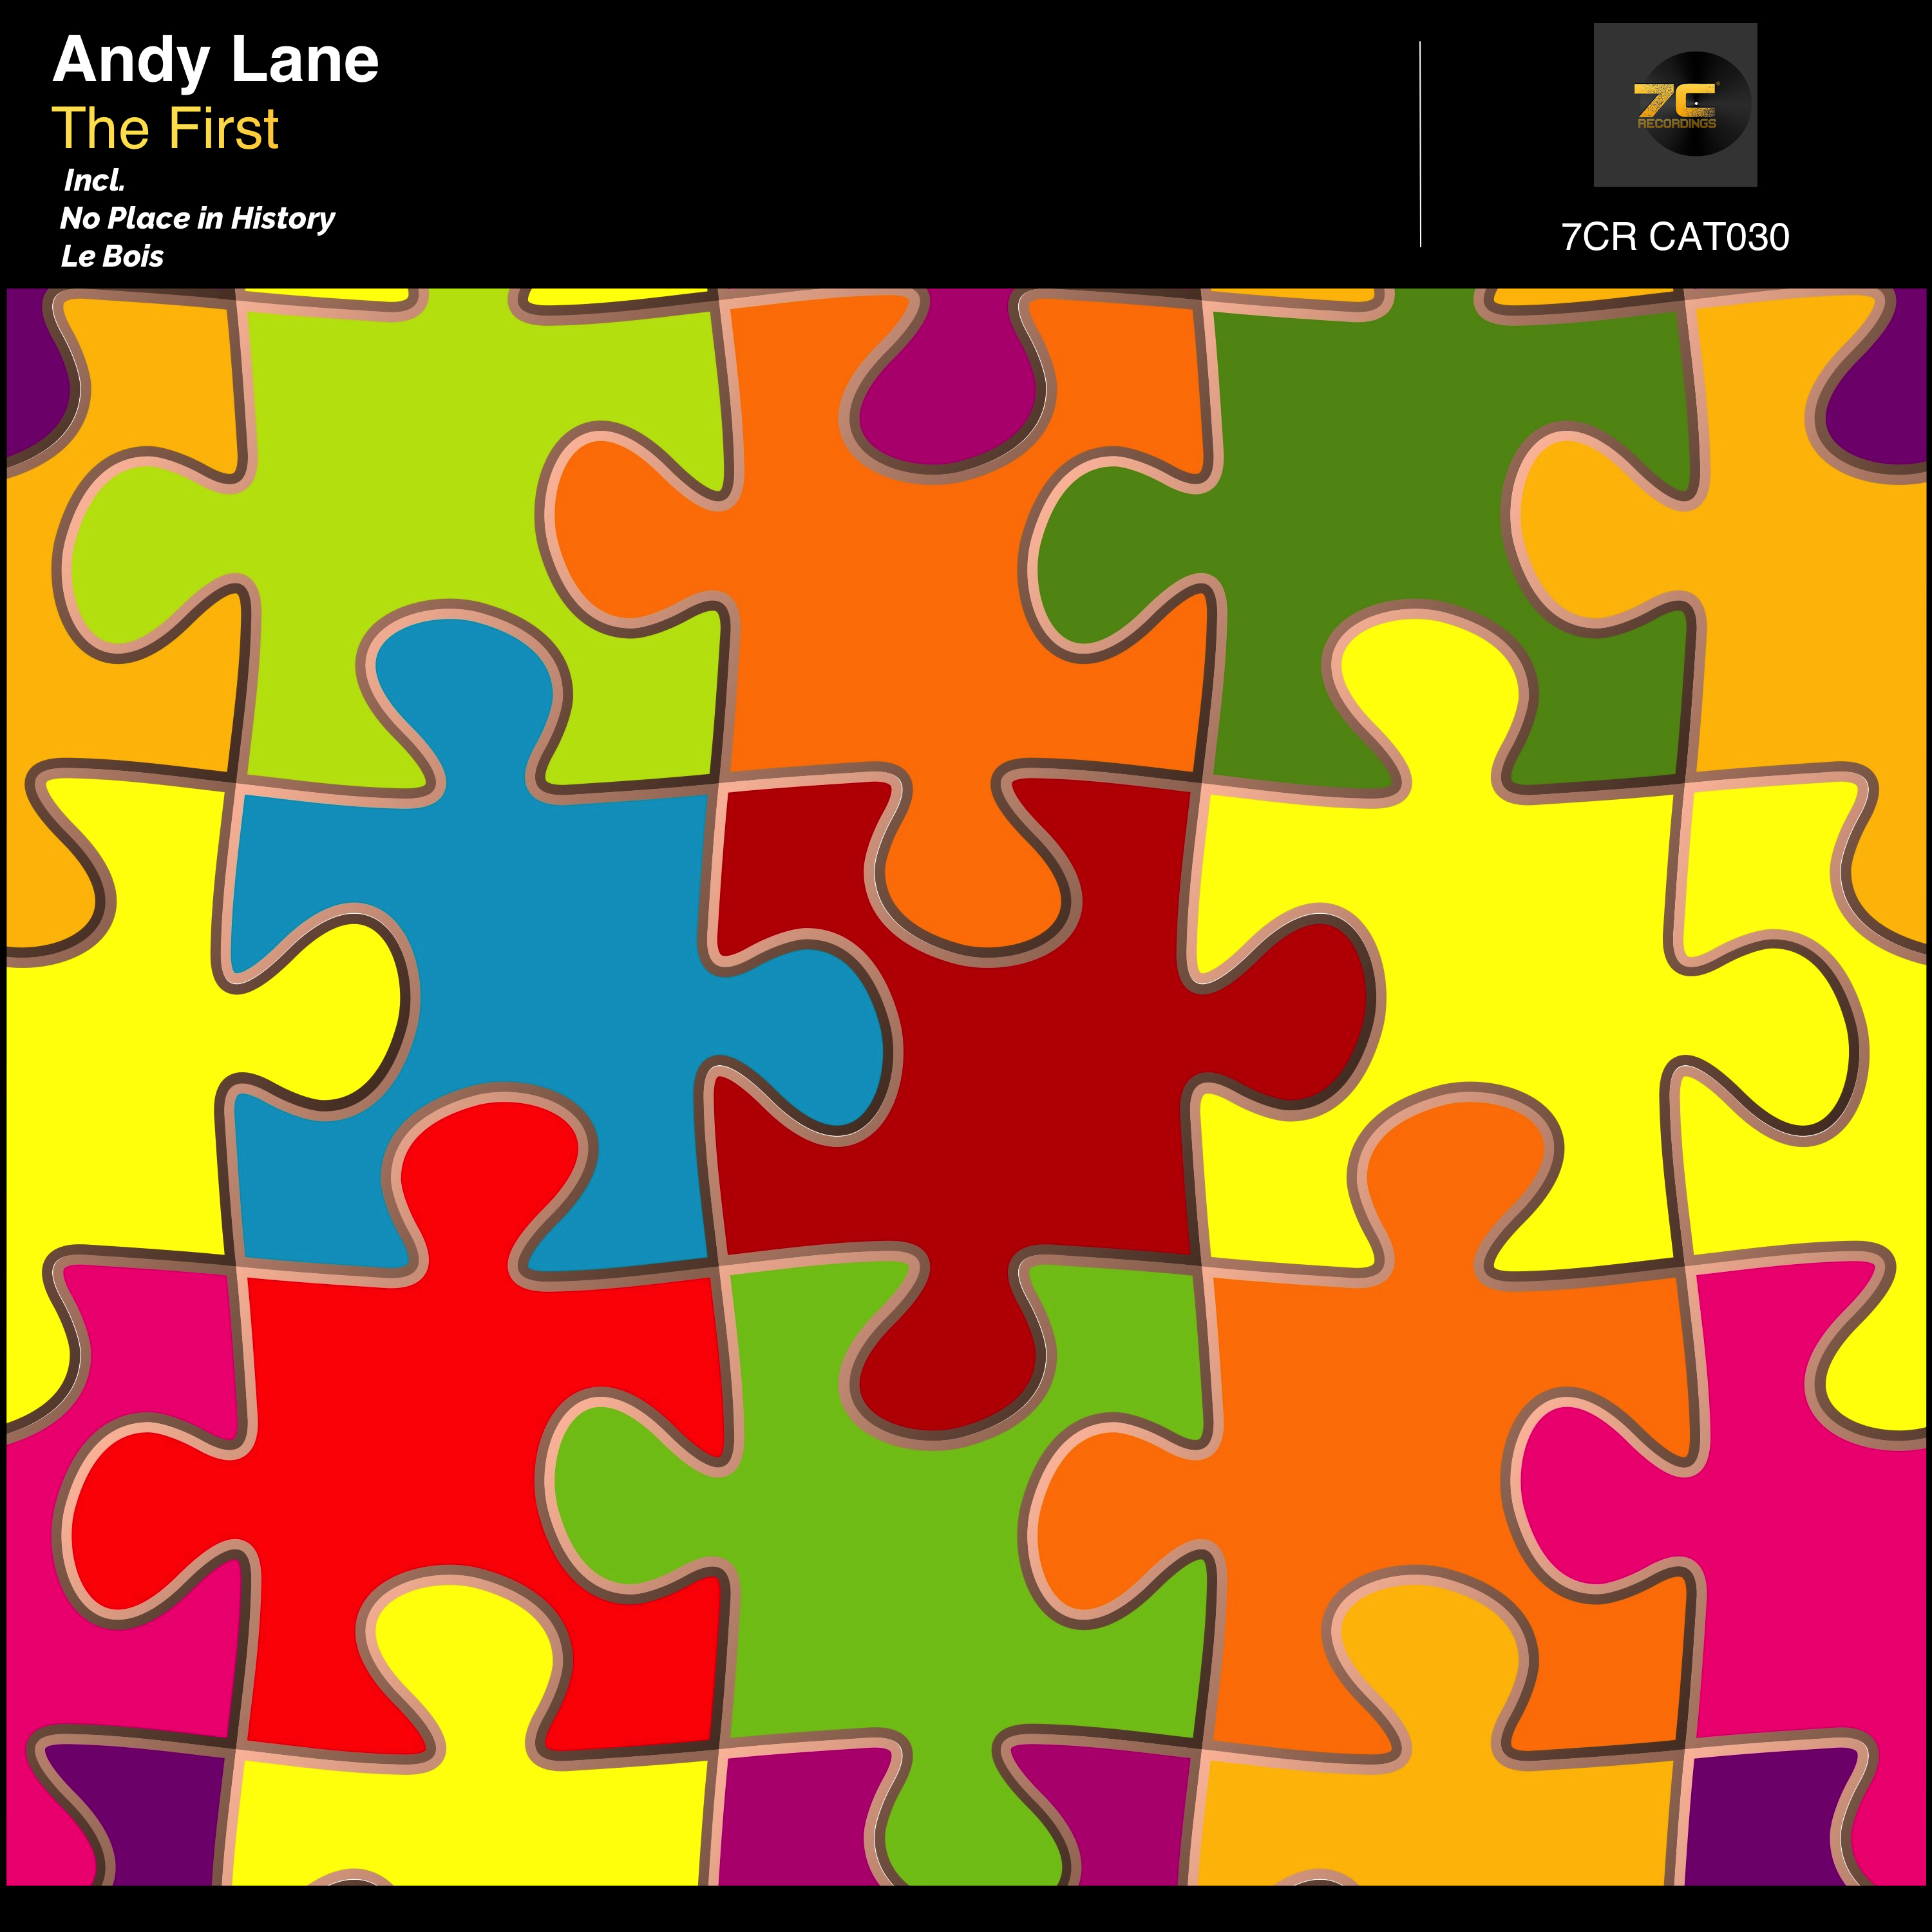 Andy Lane - The first (7c Recordings)